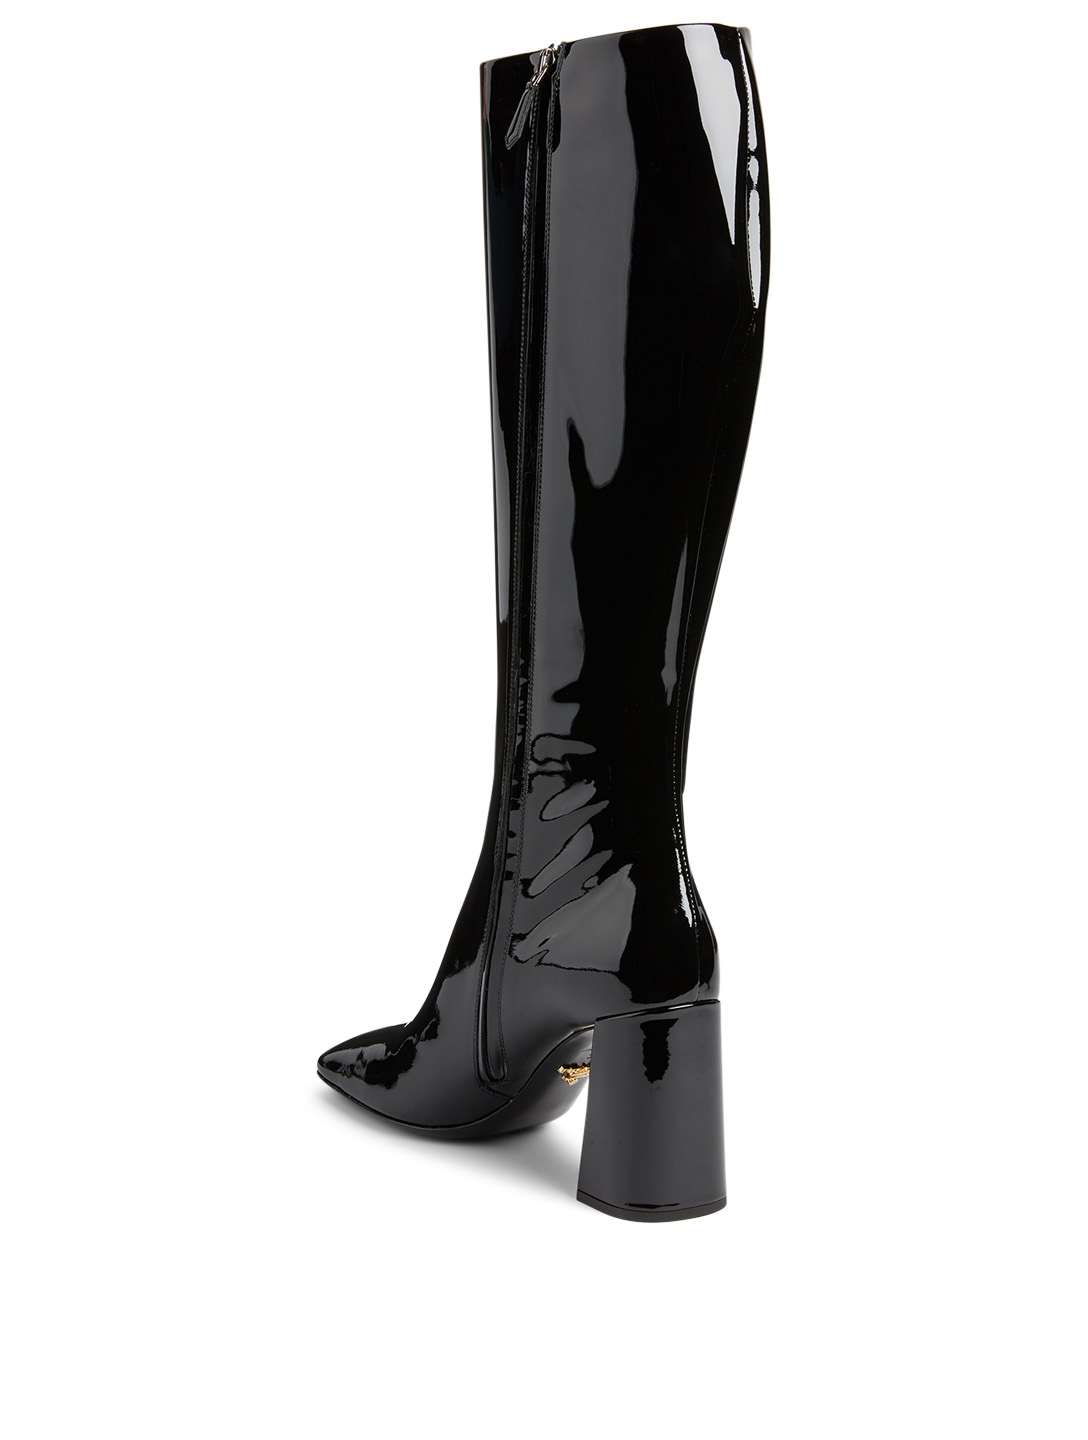 PRADA Patent Leather Knee-High Boots Women's Black